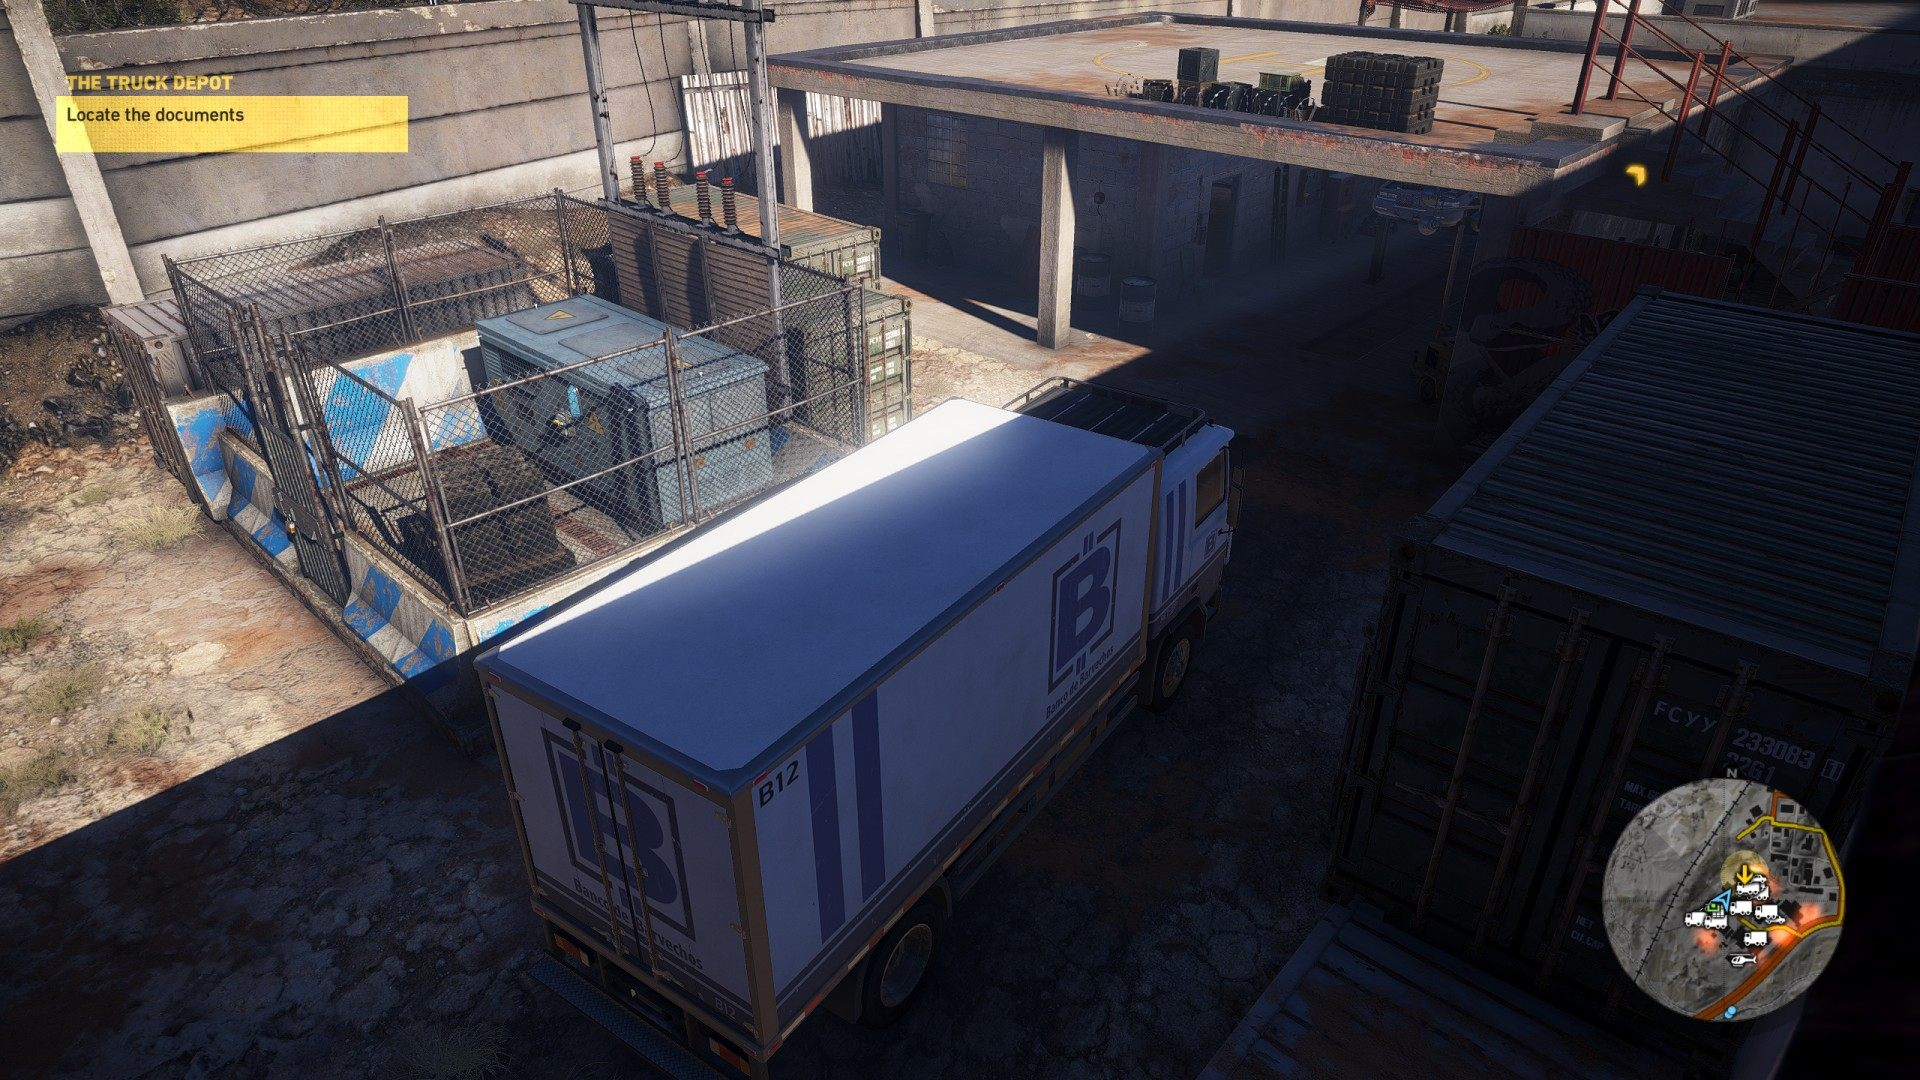 The Truck Depot, Ghost Recon: Wildlands Mission